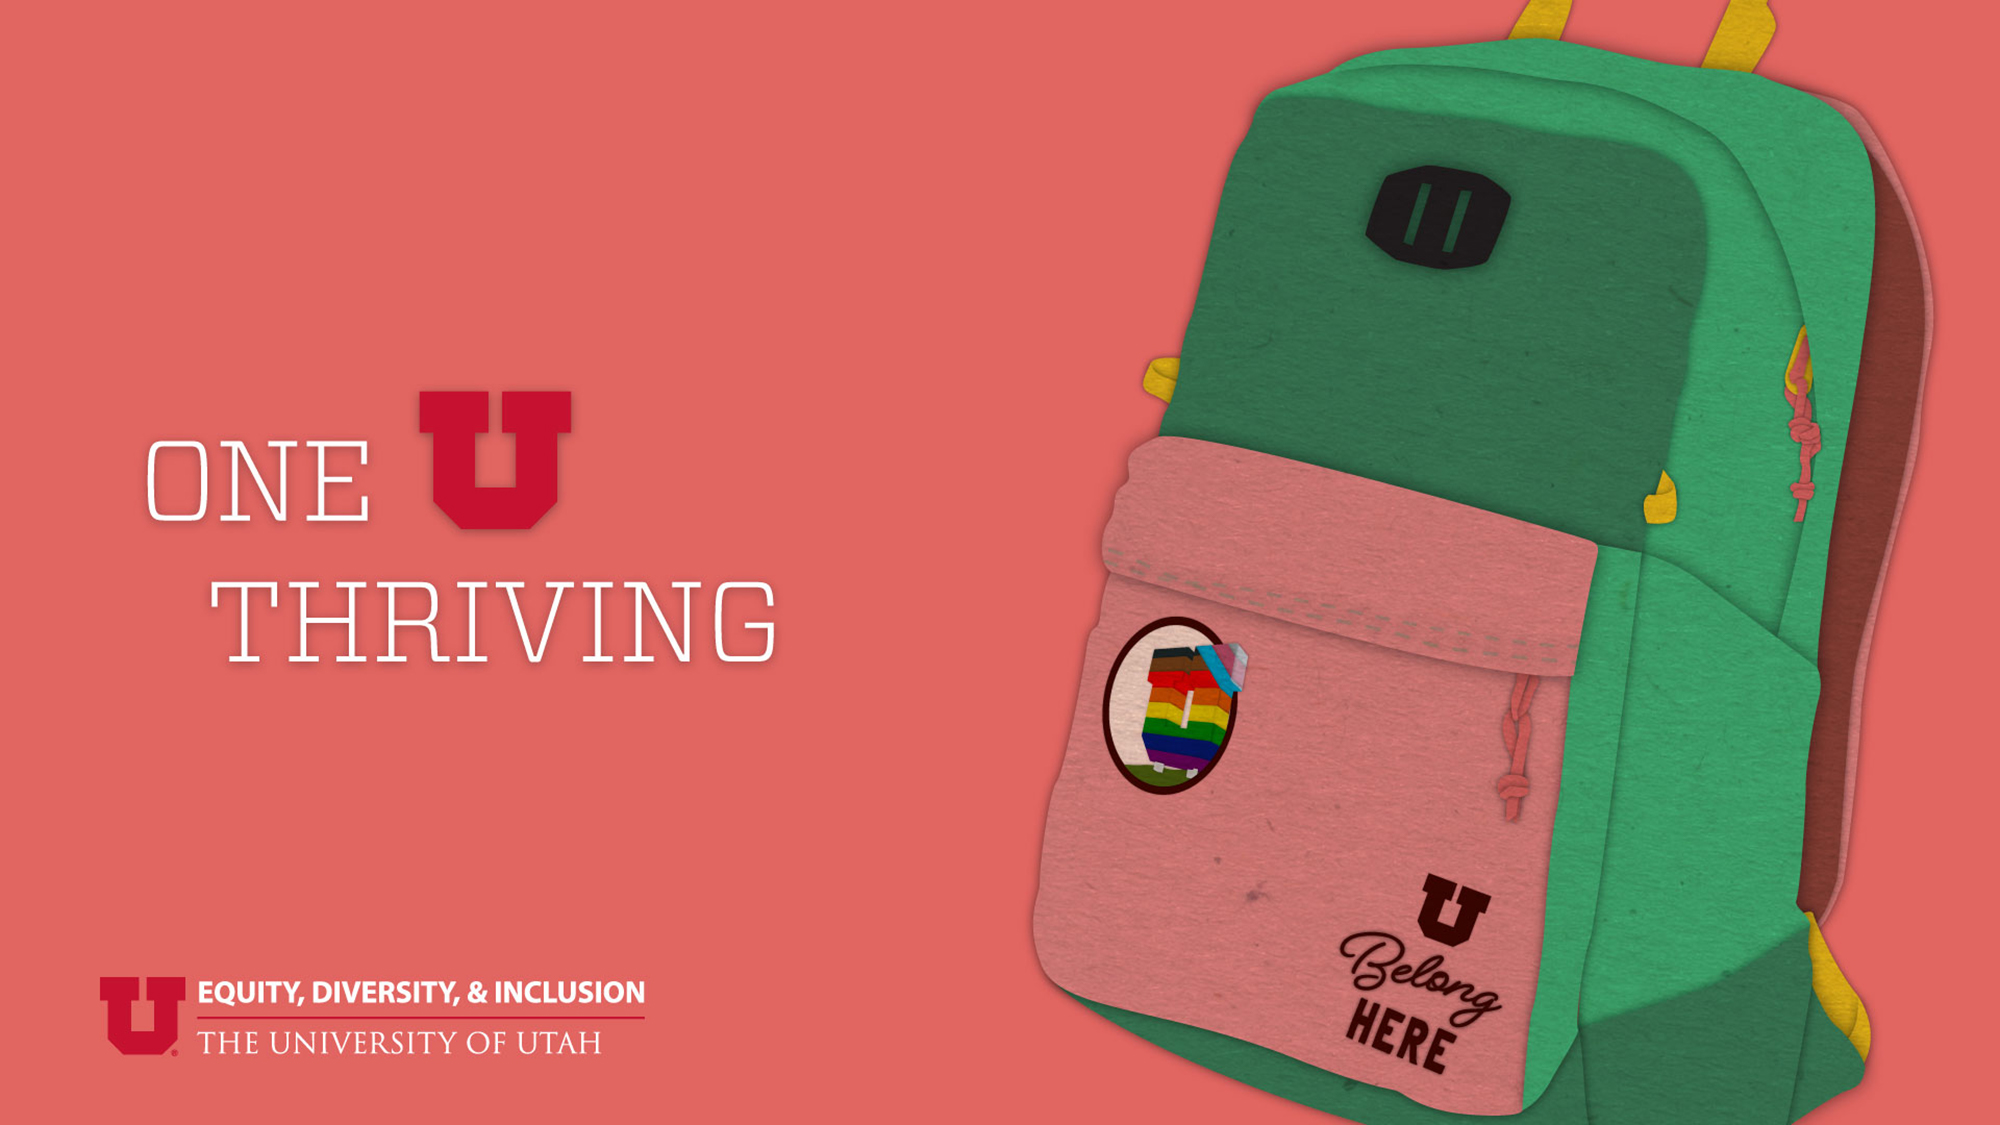 """Graphic reads """"One U thriving"""" and features a backpack that says """"U Belong here"""" on it."""